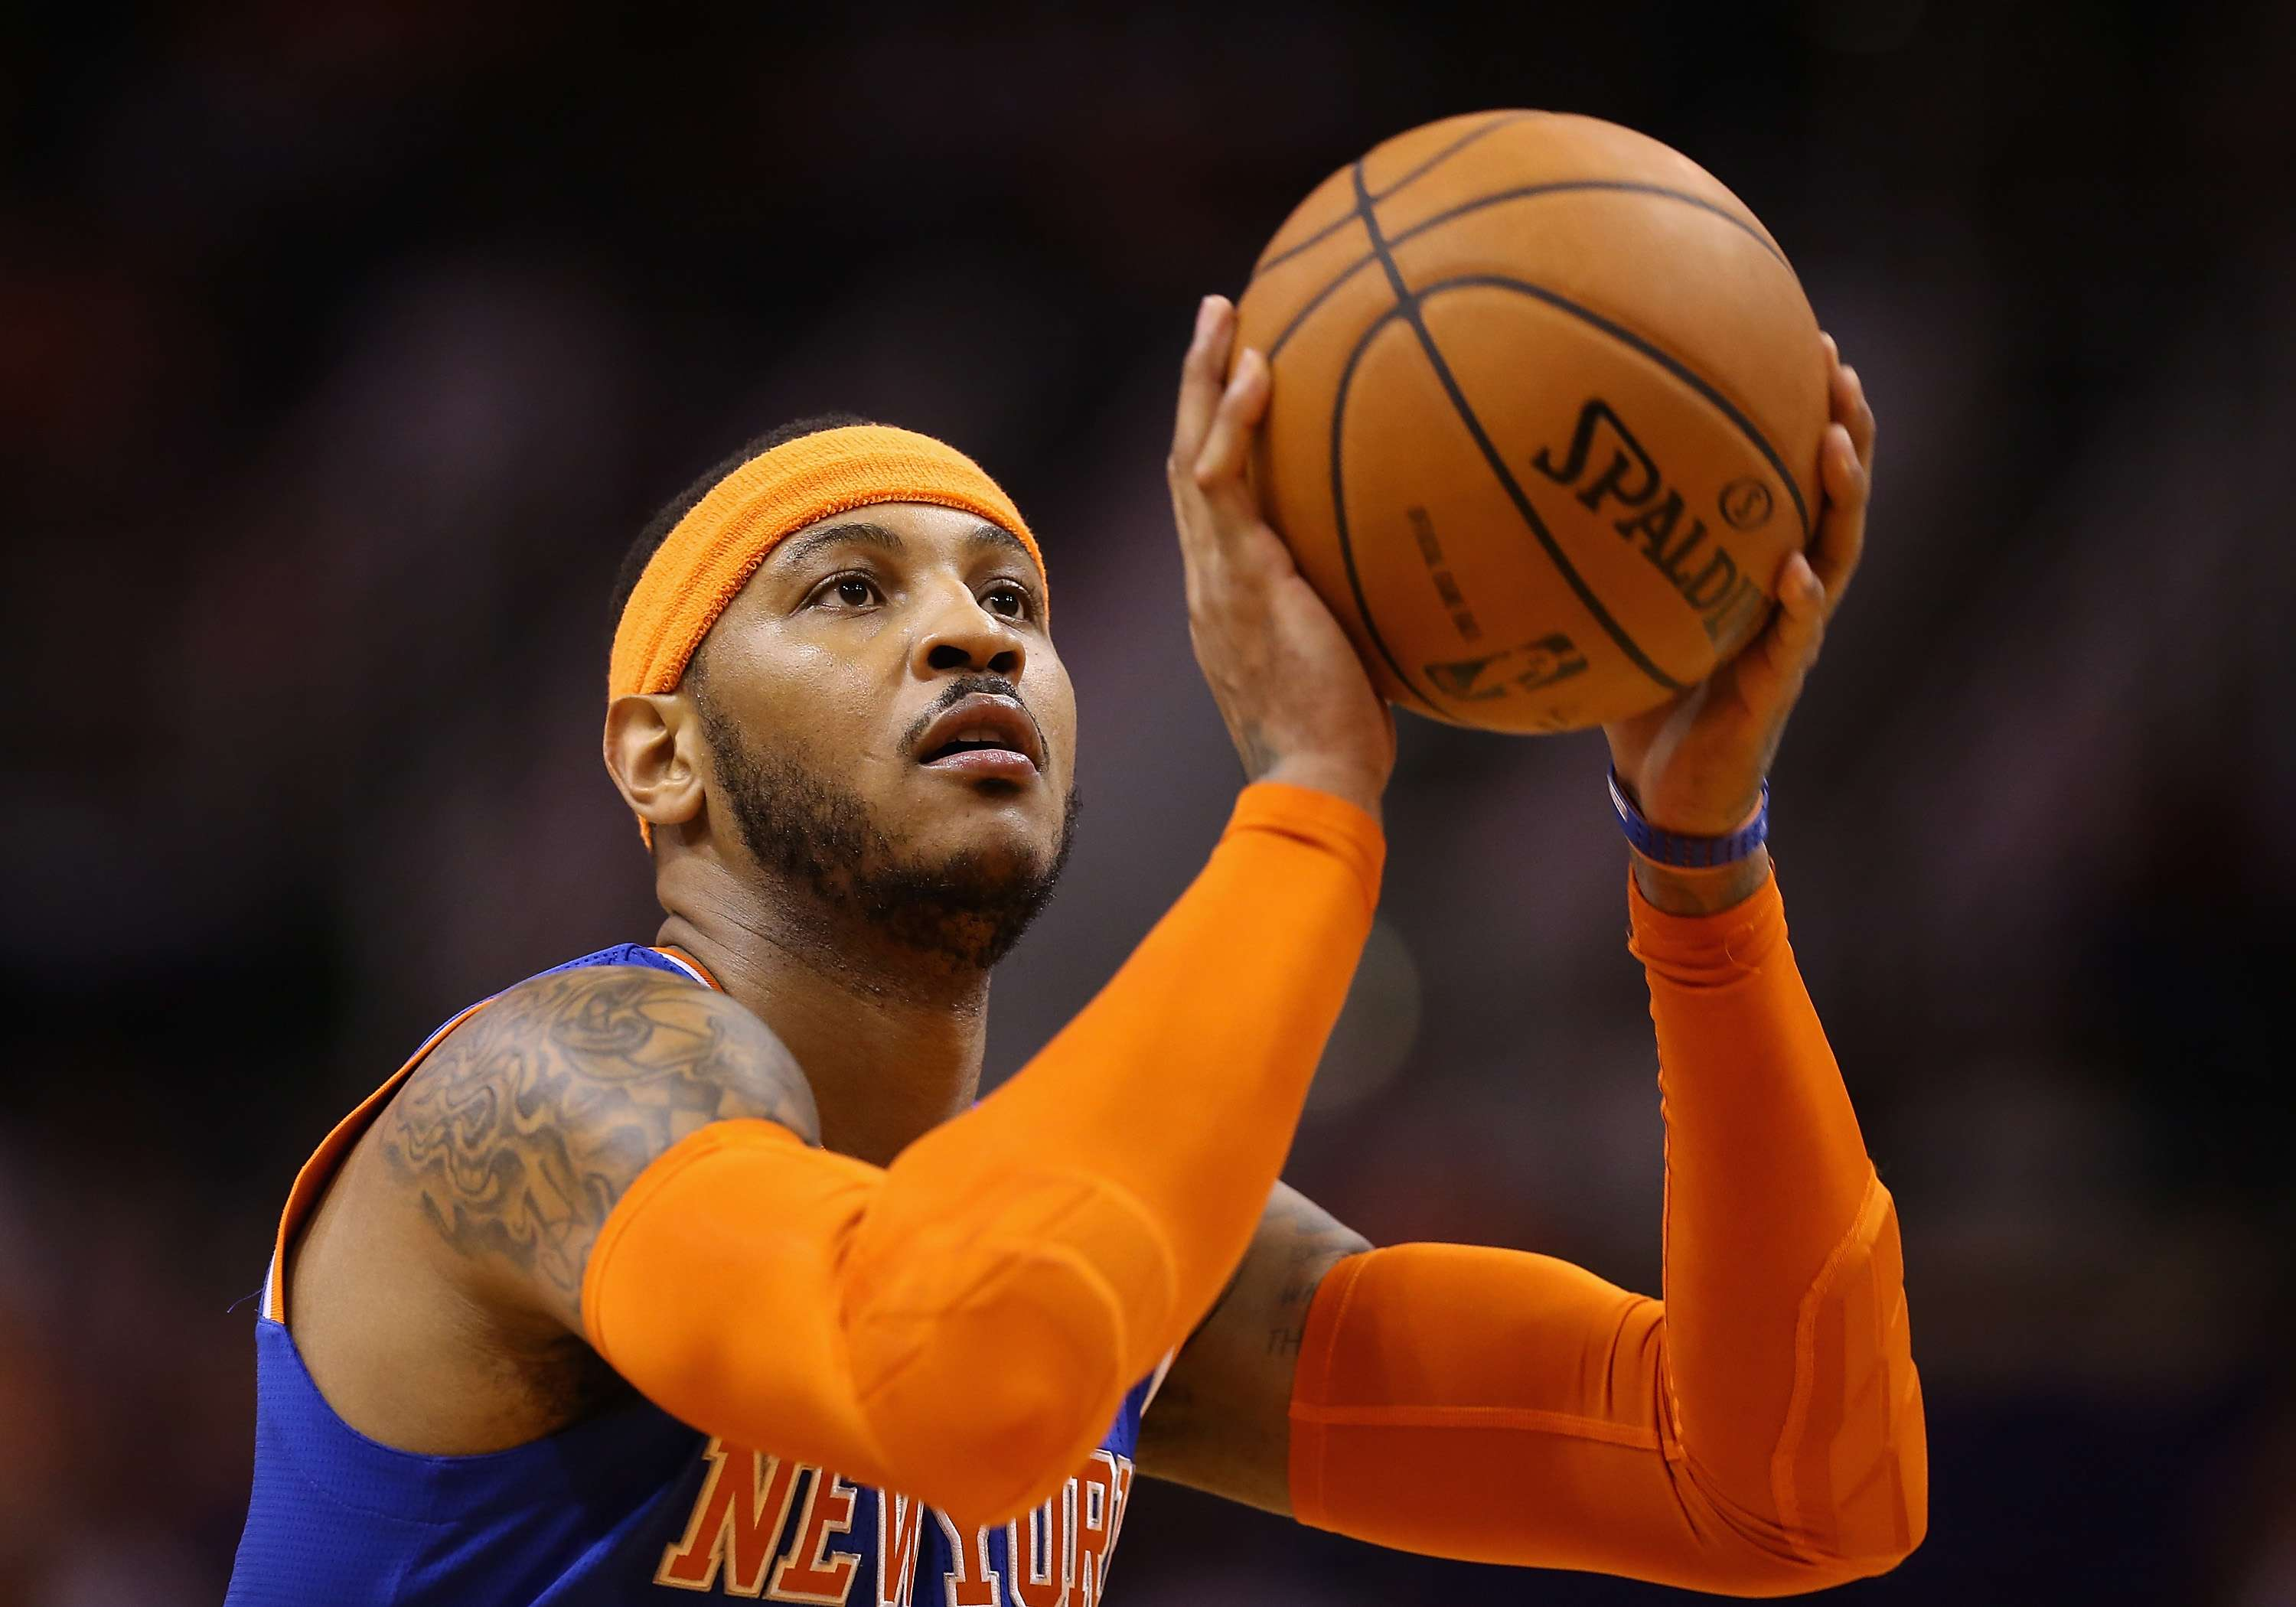 Los Rockets reciben a Carmelo Anthony con la camiseta '7'